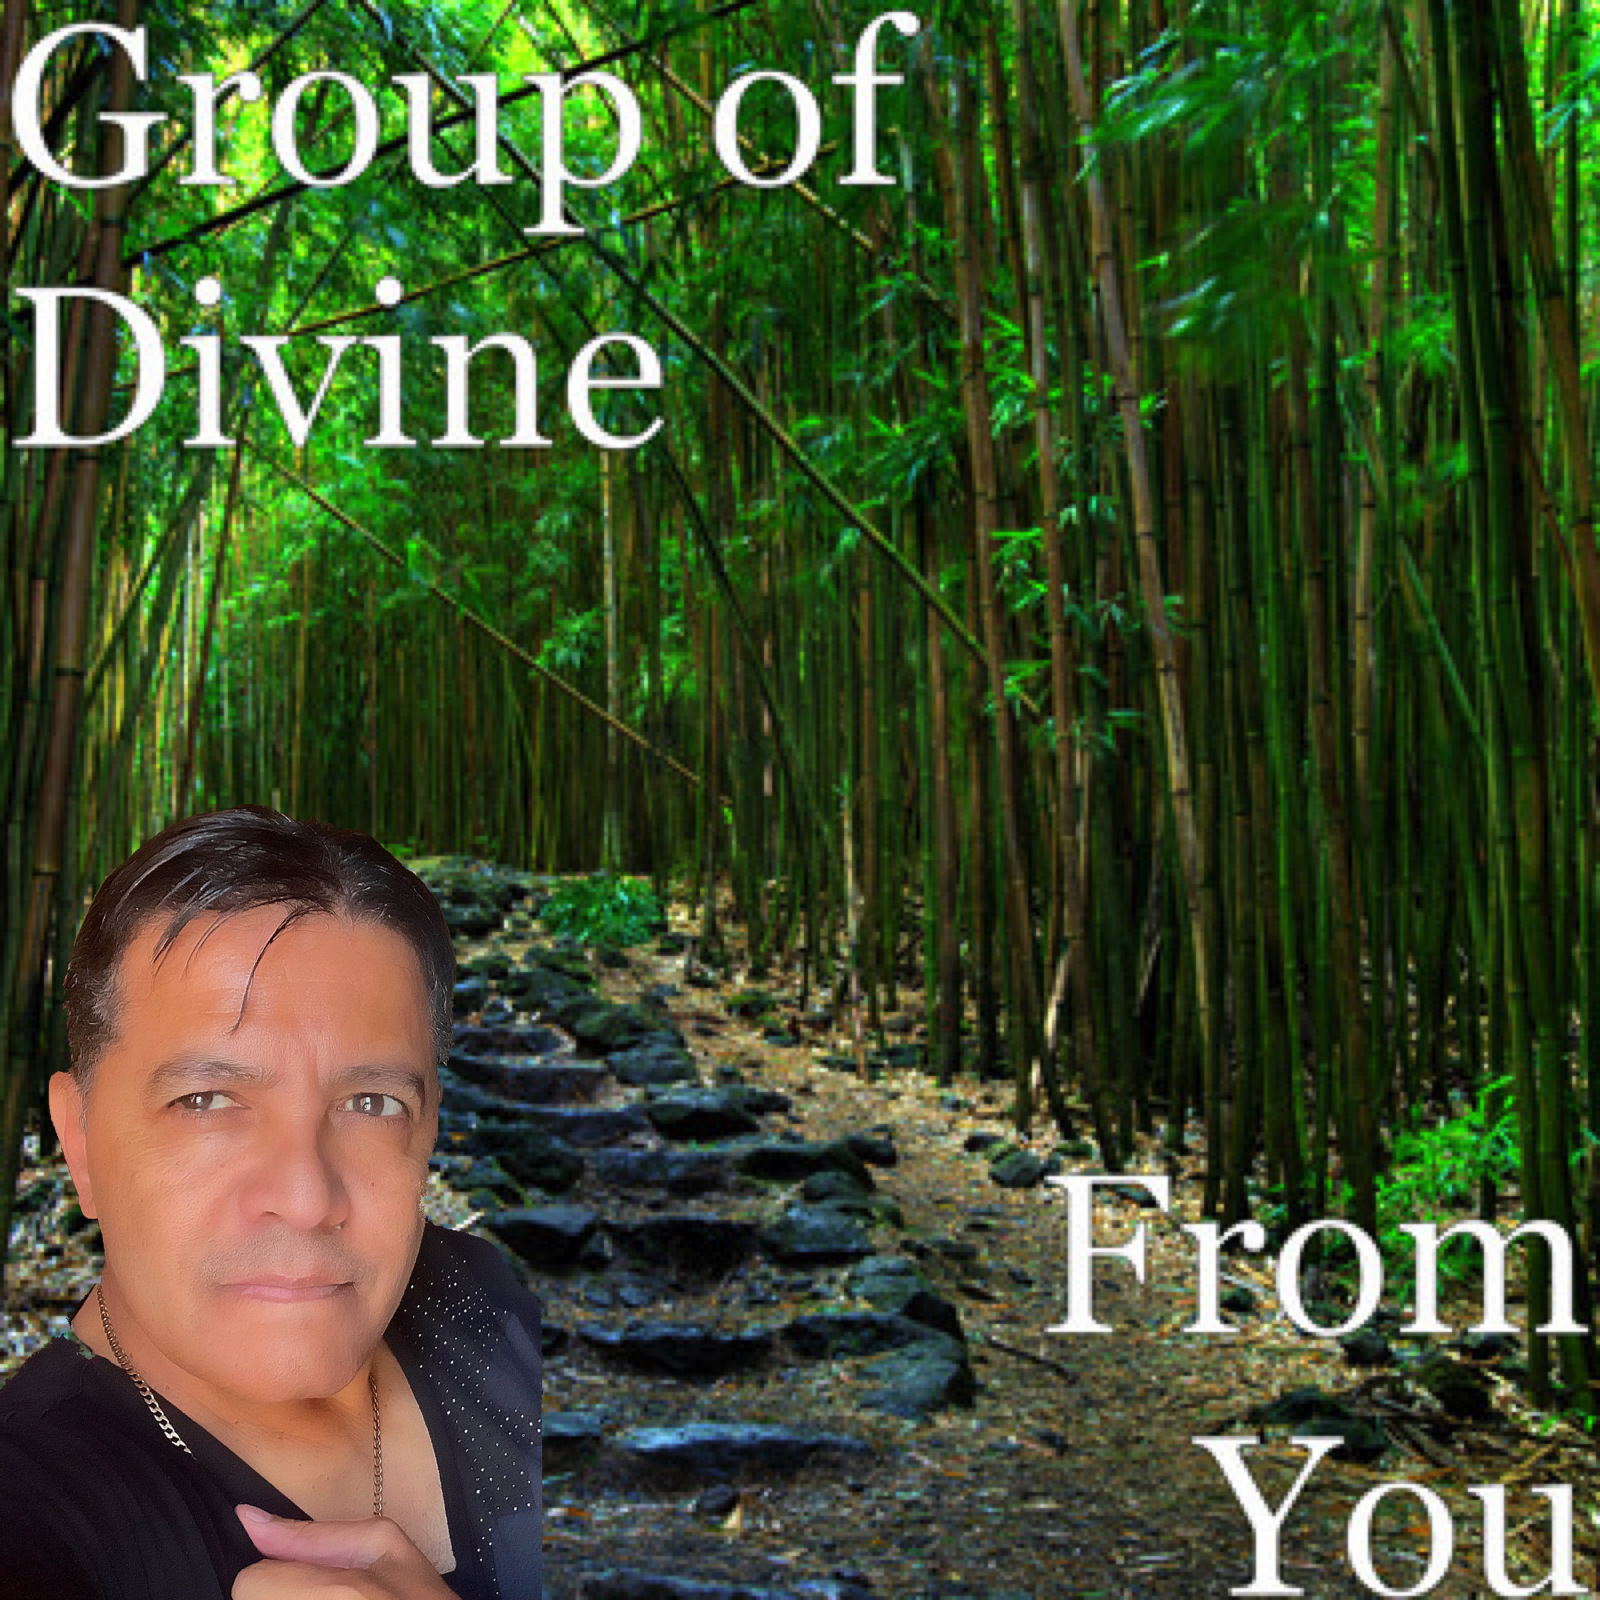 Cliff Weidman's gospel Group of Divine is making strides with 2019's I Found You EP. 1